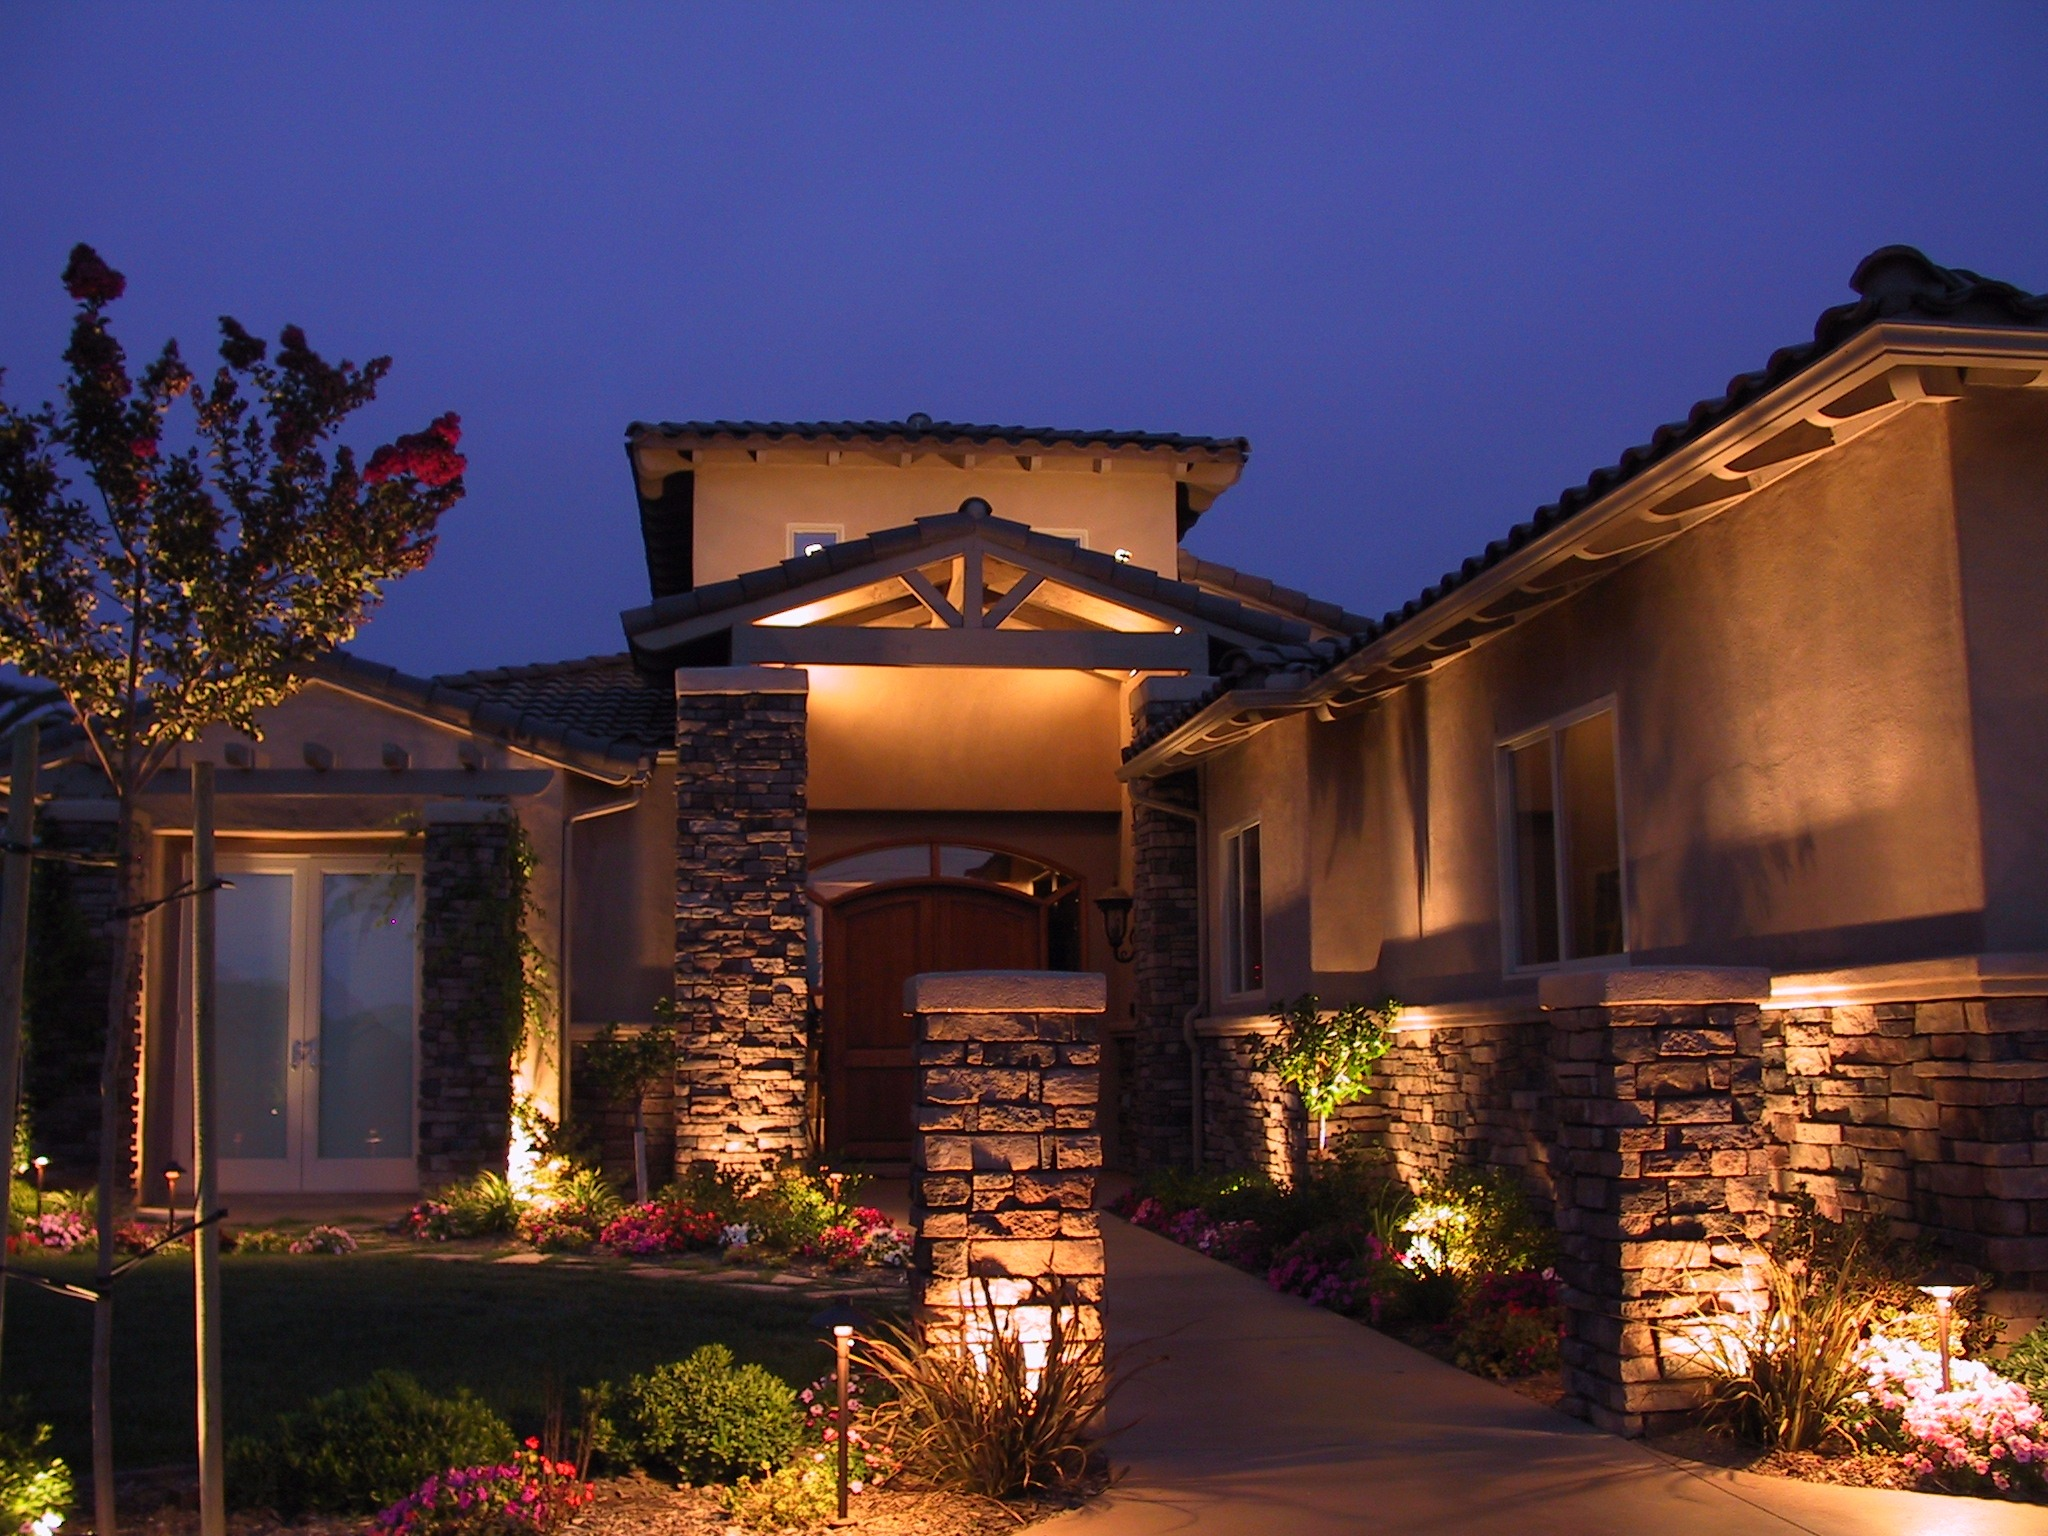 landscape lighting - Outdoor Lighting Design Ideas